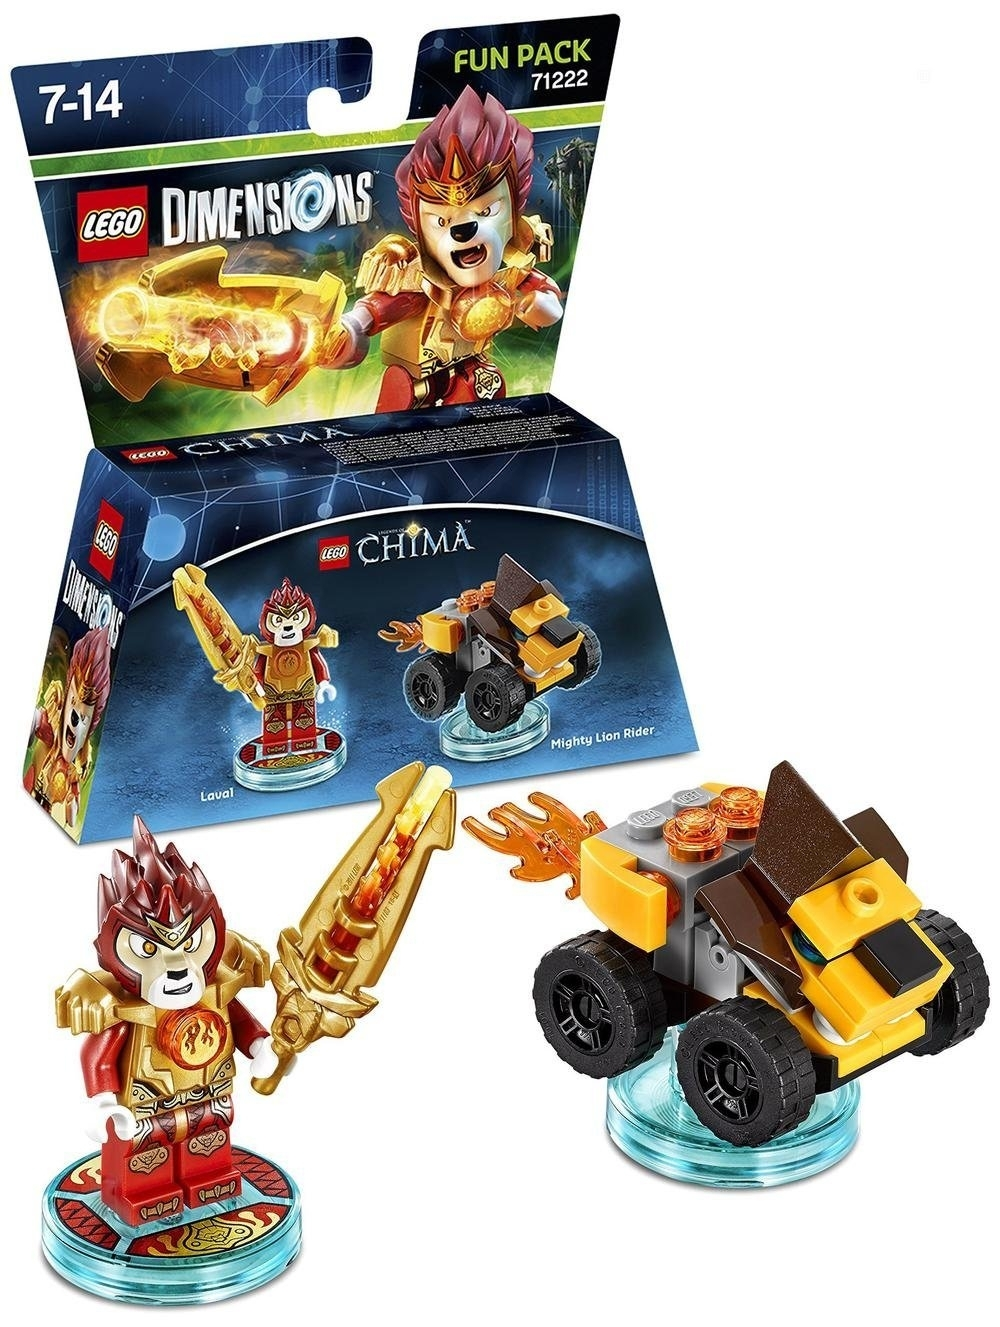 LEGO Dimensions Fun Pack Laval LEGO Chima  71222